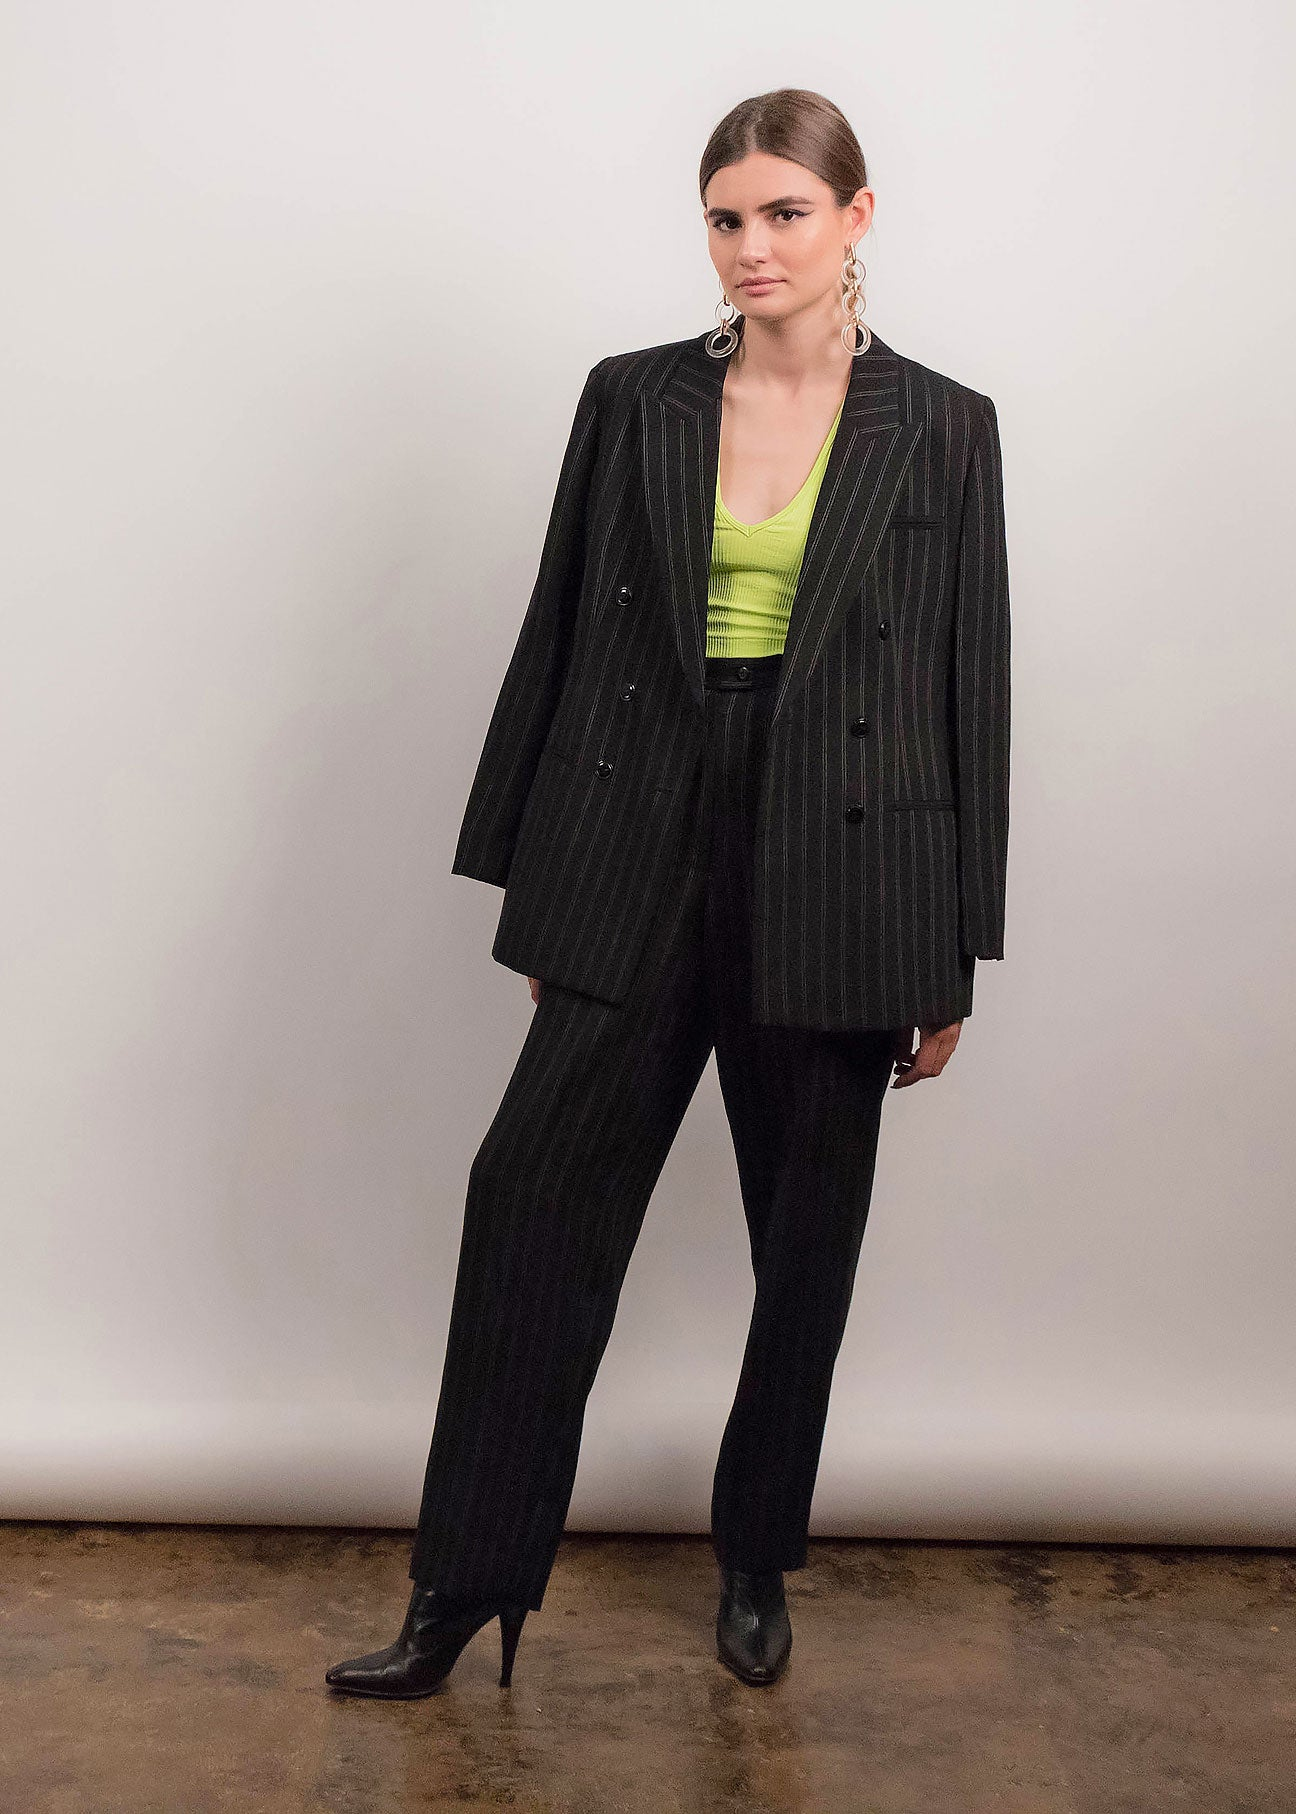 90s Double-Breasted Pin Striped Suit